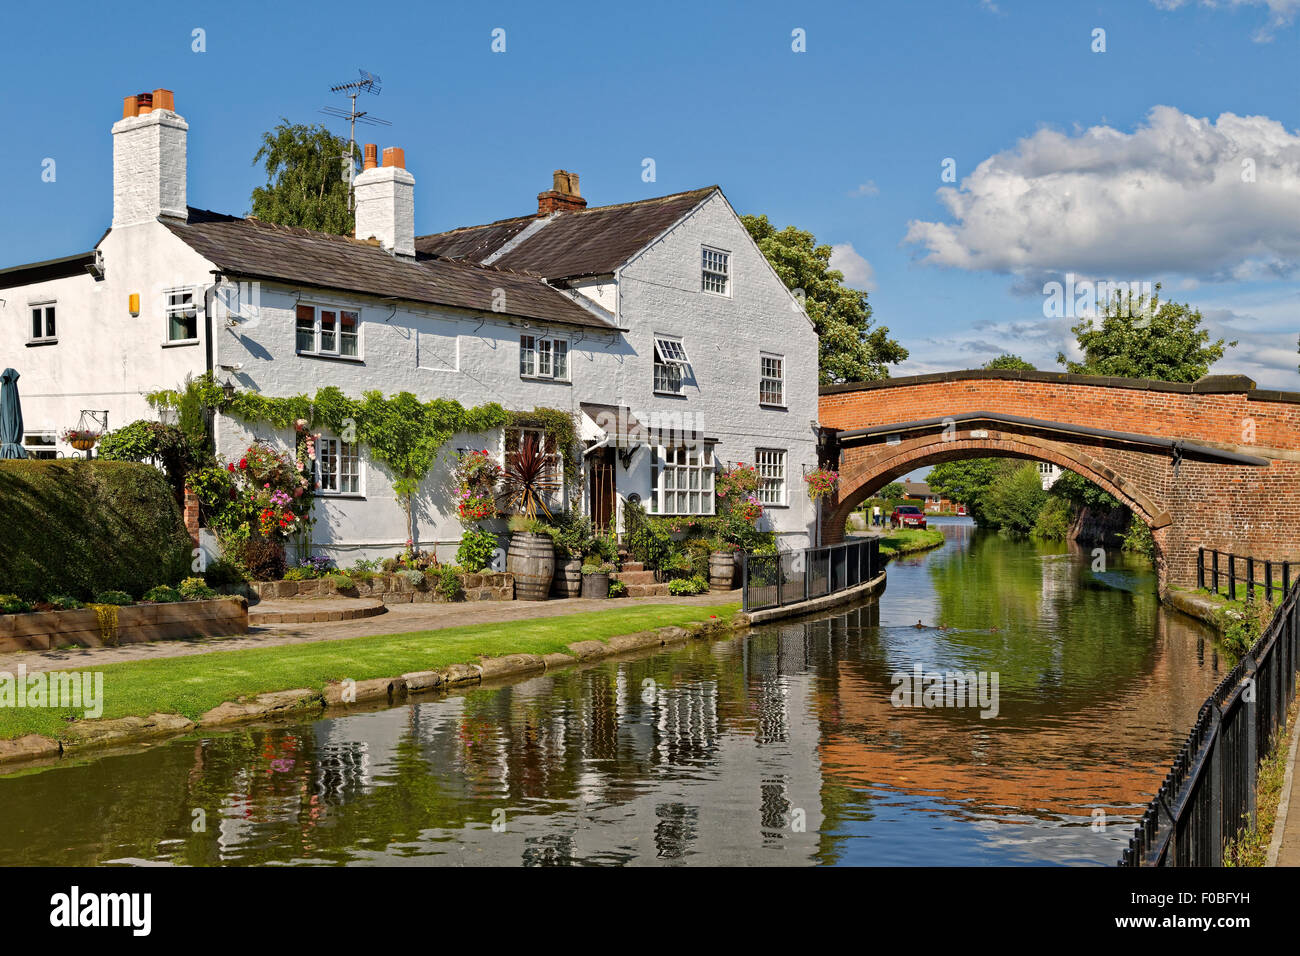 House and cottage on the banks of the Bridgewater canal at Lymm in Cheshire, England. Stock Photo